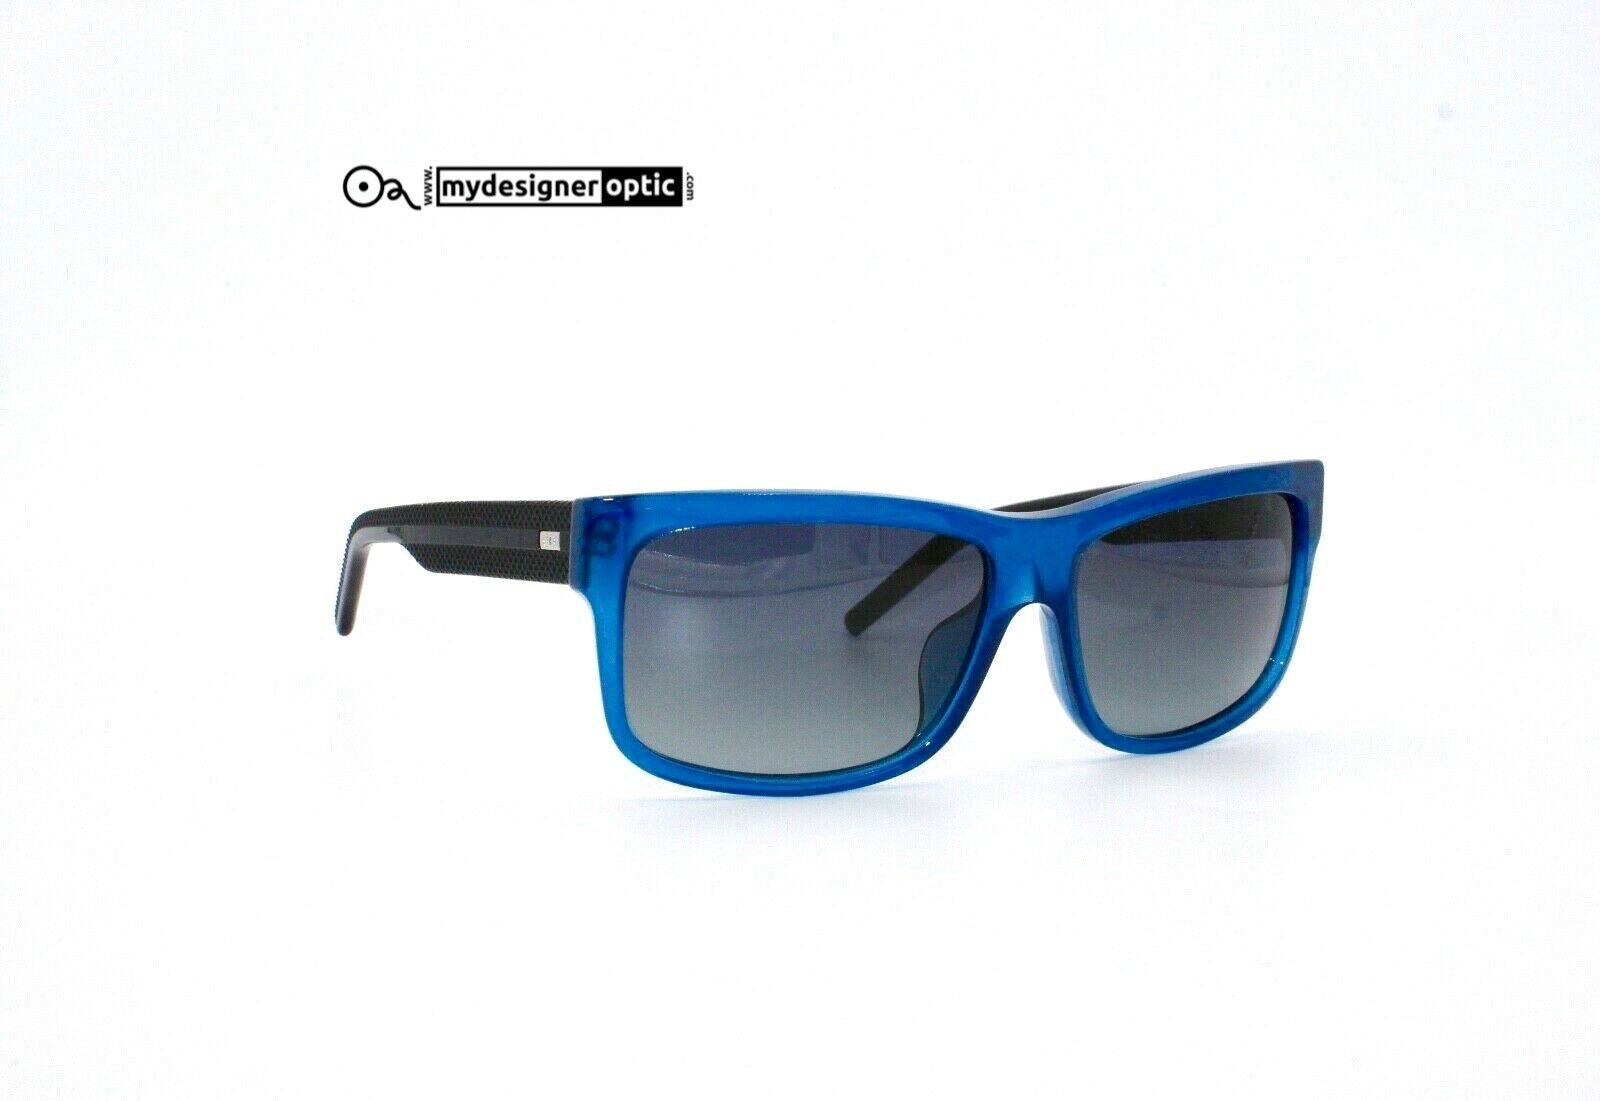 Dior Homme Sunglasses BLACKTIE174FS 2WBHD 60-15-145 Made in Italy (DEAD STOCK) - Mydesigneroptic